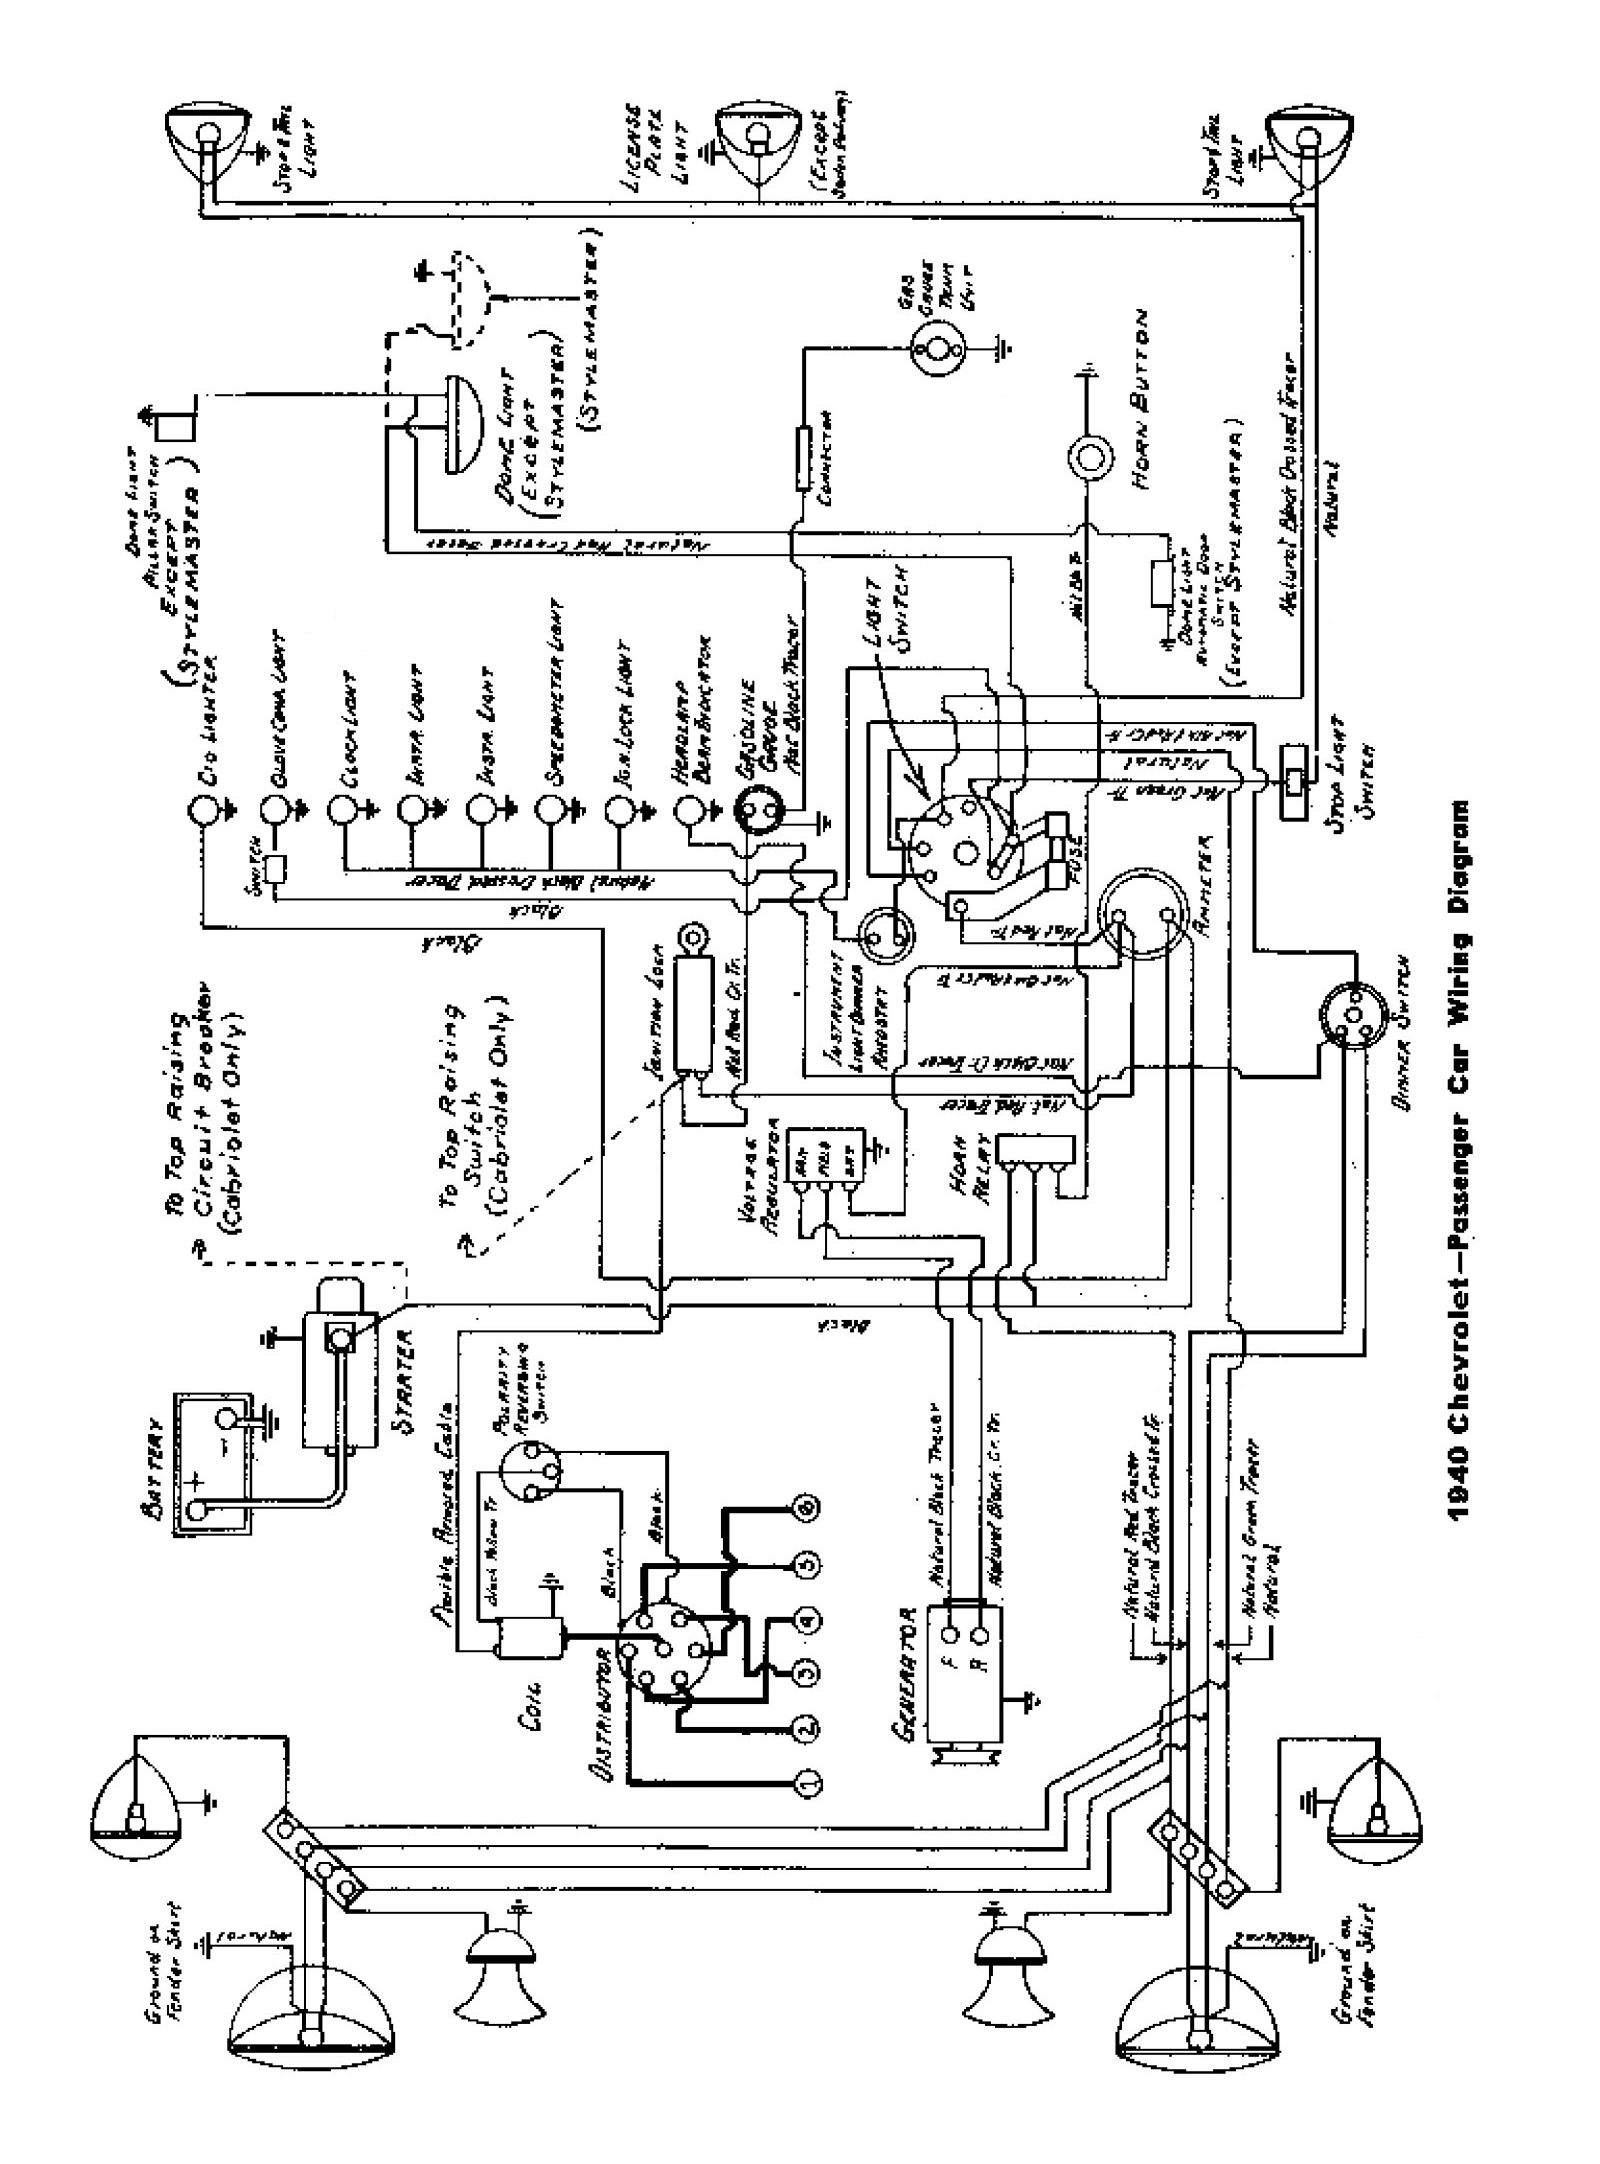 Chevy Wiring Diagrams Garage Diagram Free Download Schematic 1940 Passenger Car